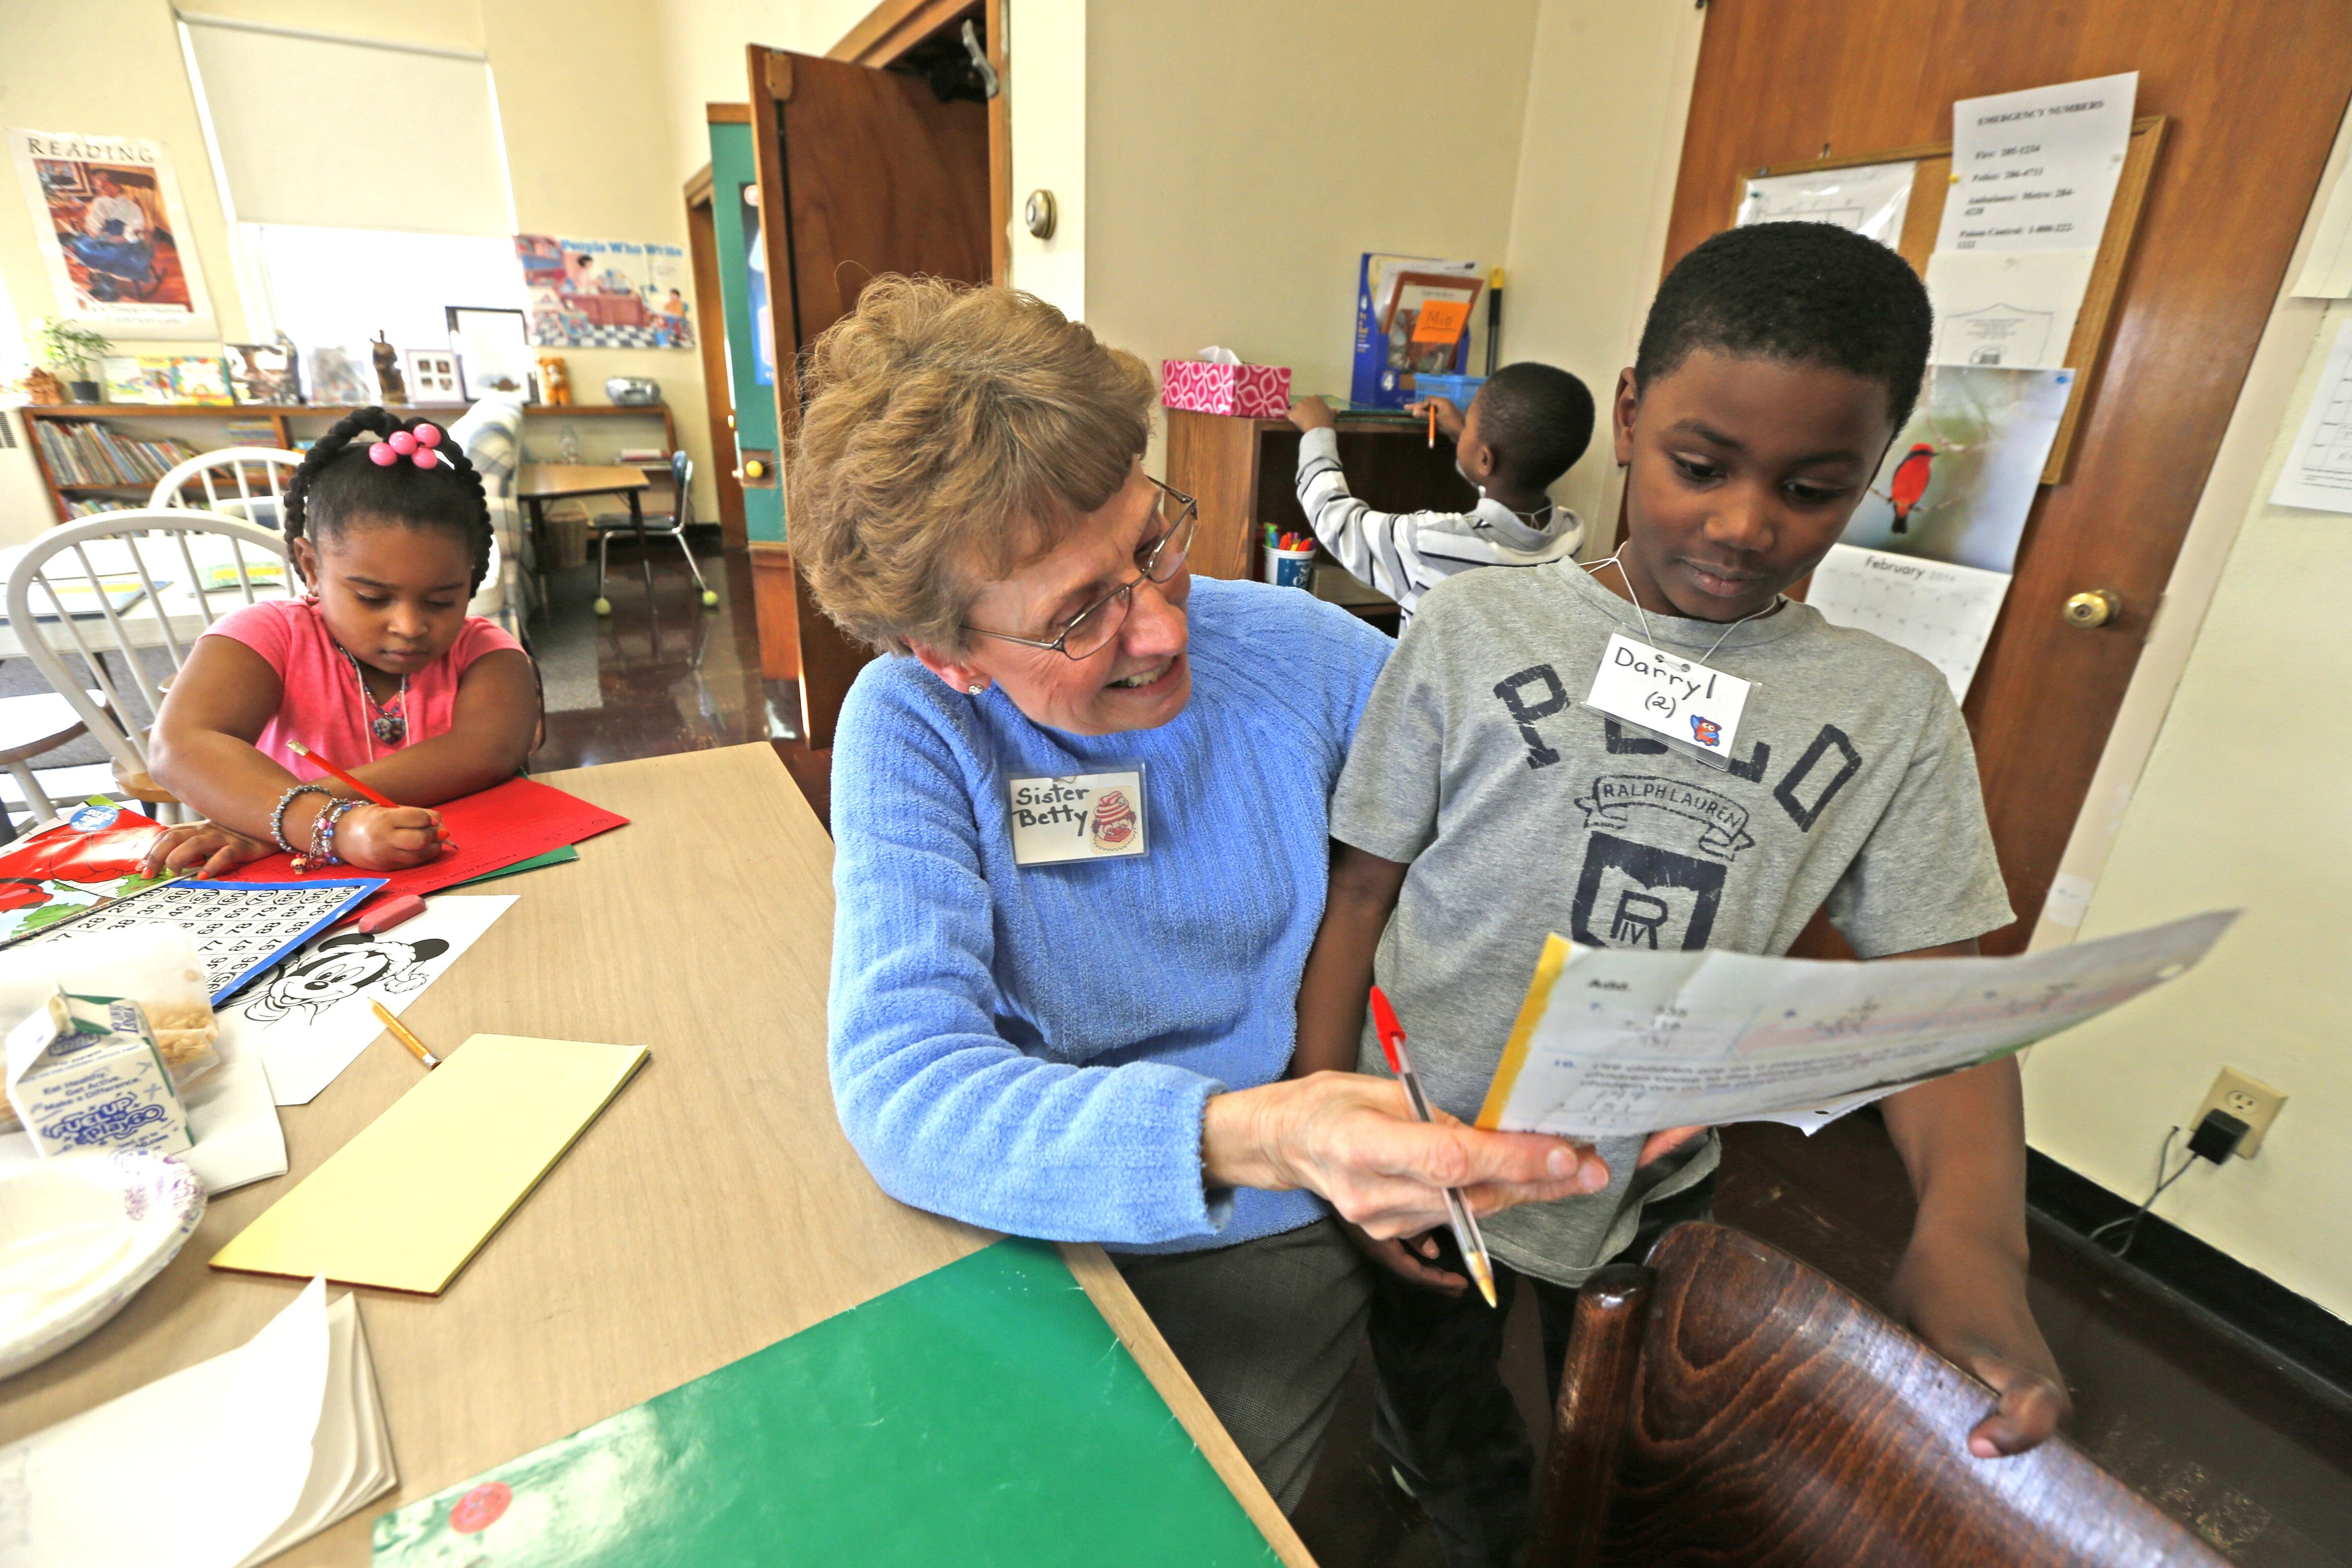 Sister Betty Neumeister helps Darryl Smith, 7, with his math homework at the Francis Center Children's Program in a former Catholic school in Niagara Falls. The program helps students with academics through one-on-one tutoring.